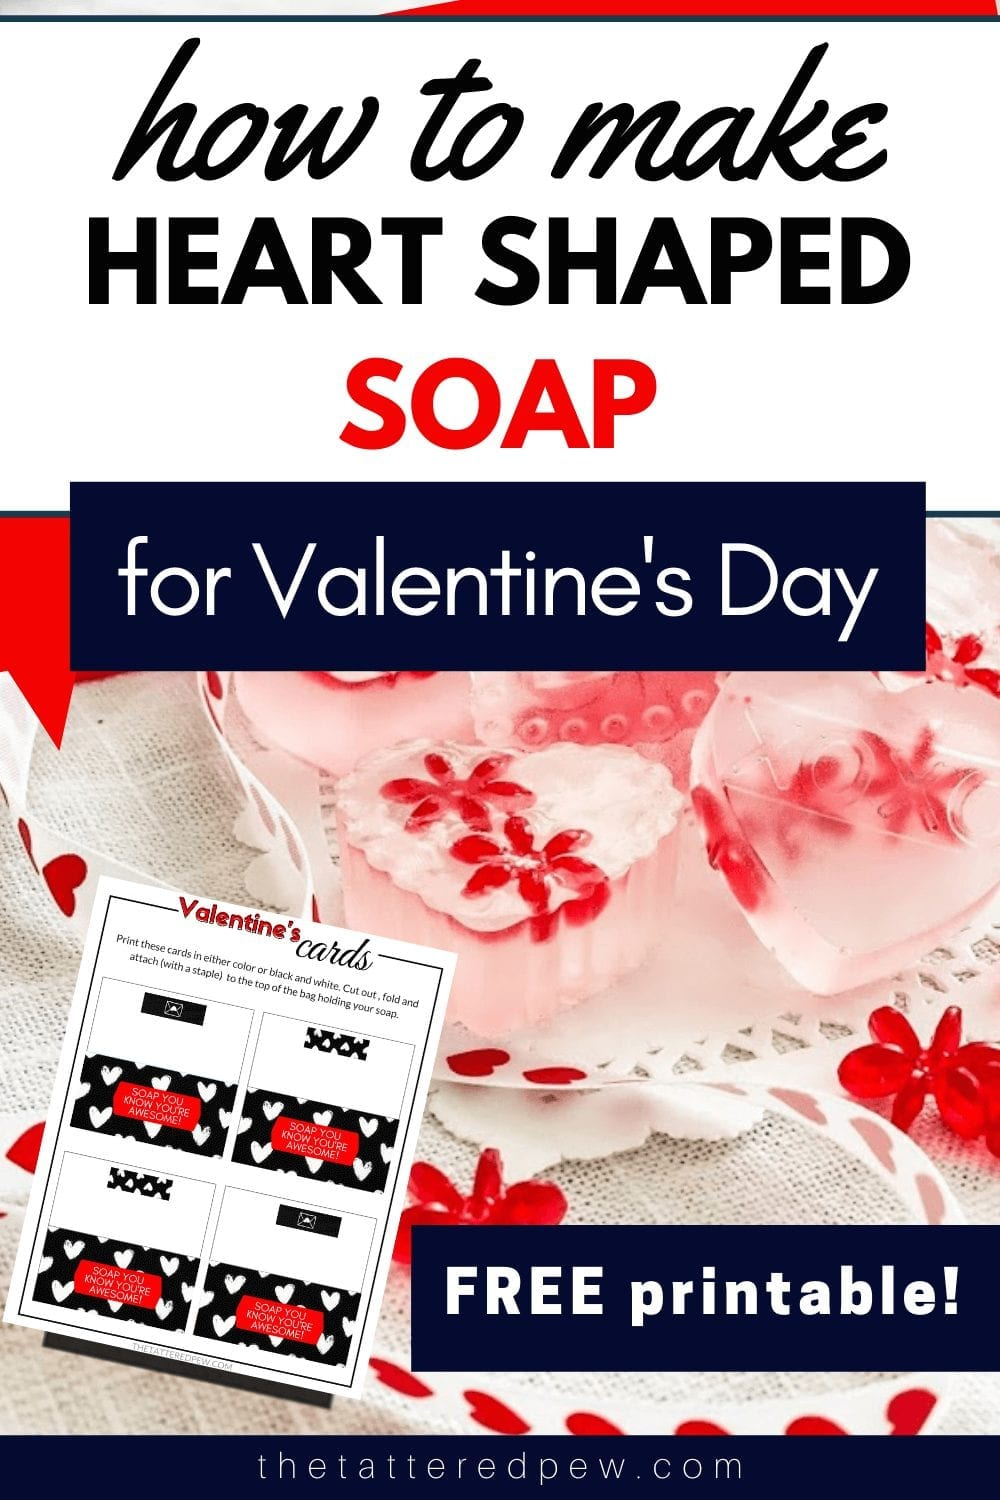 You will LOVE this recipe for homemade heart shaped soap...perfect for Valentine's Day!